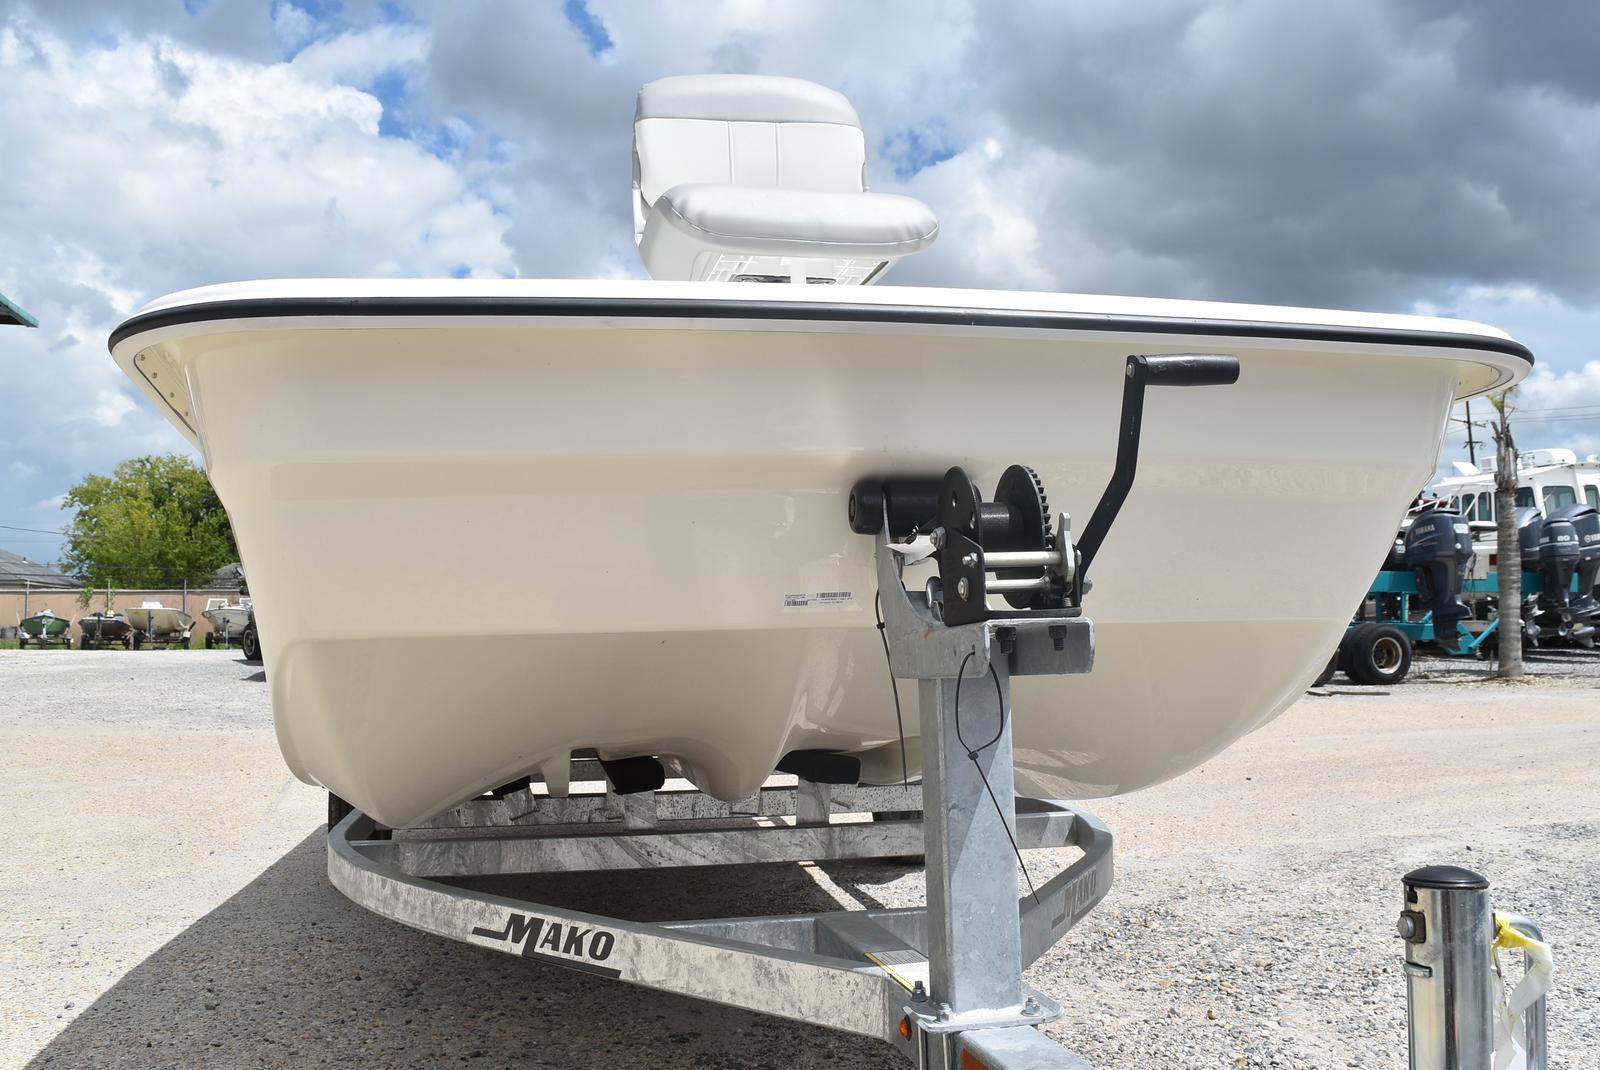 2020 Mako boat for sale, model of the boat is Pro Skiff 17, 75 ELPT & Image # 369 of 702